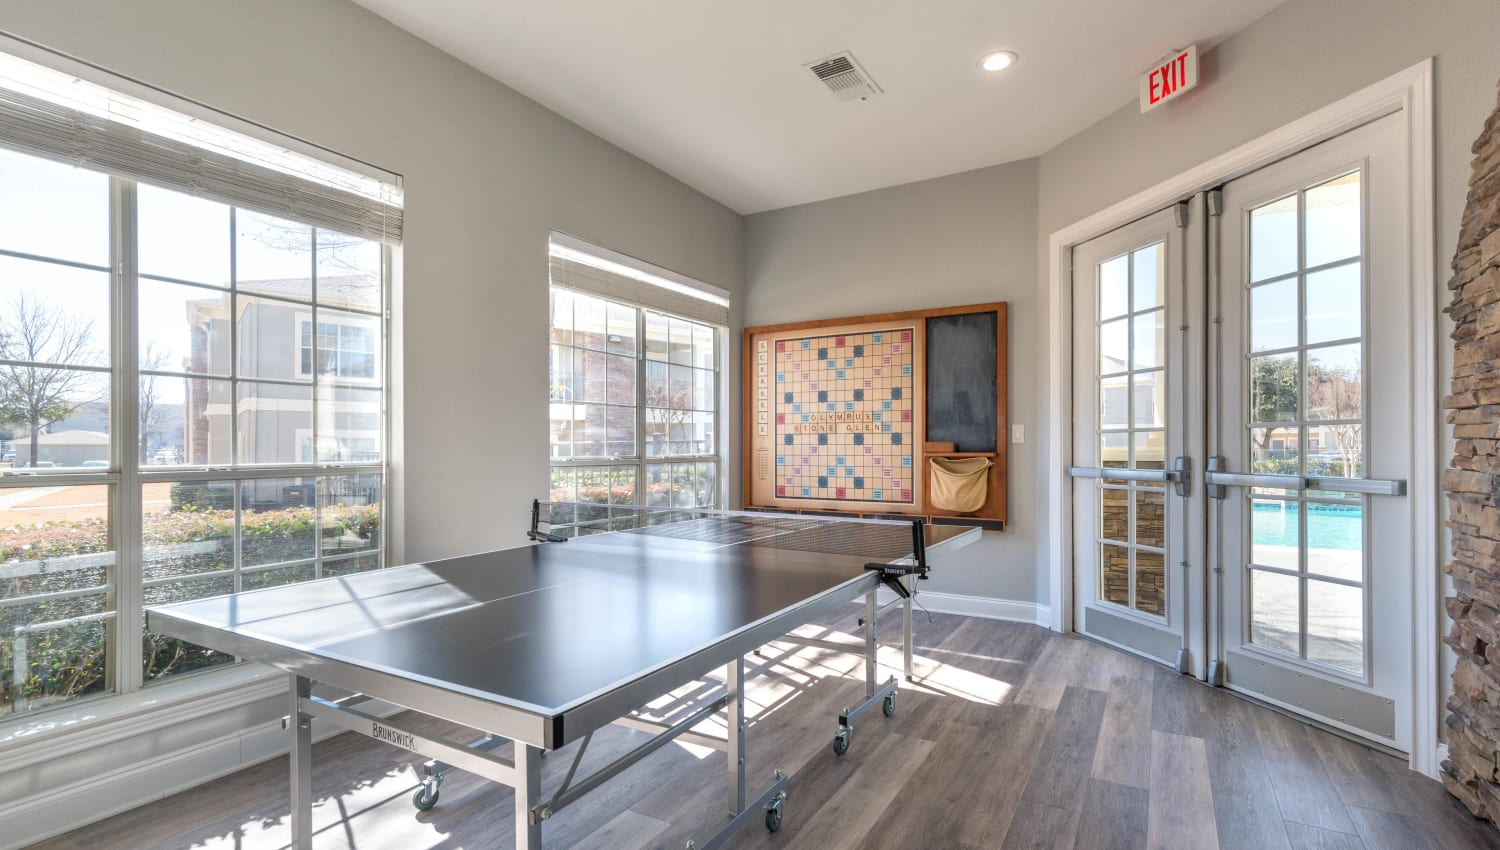 Game room with a ping pong table at Olympus Stone Glen in Keller, Texas